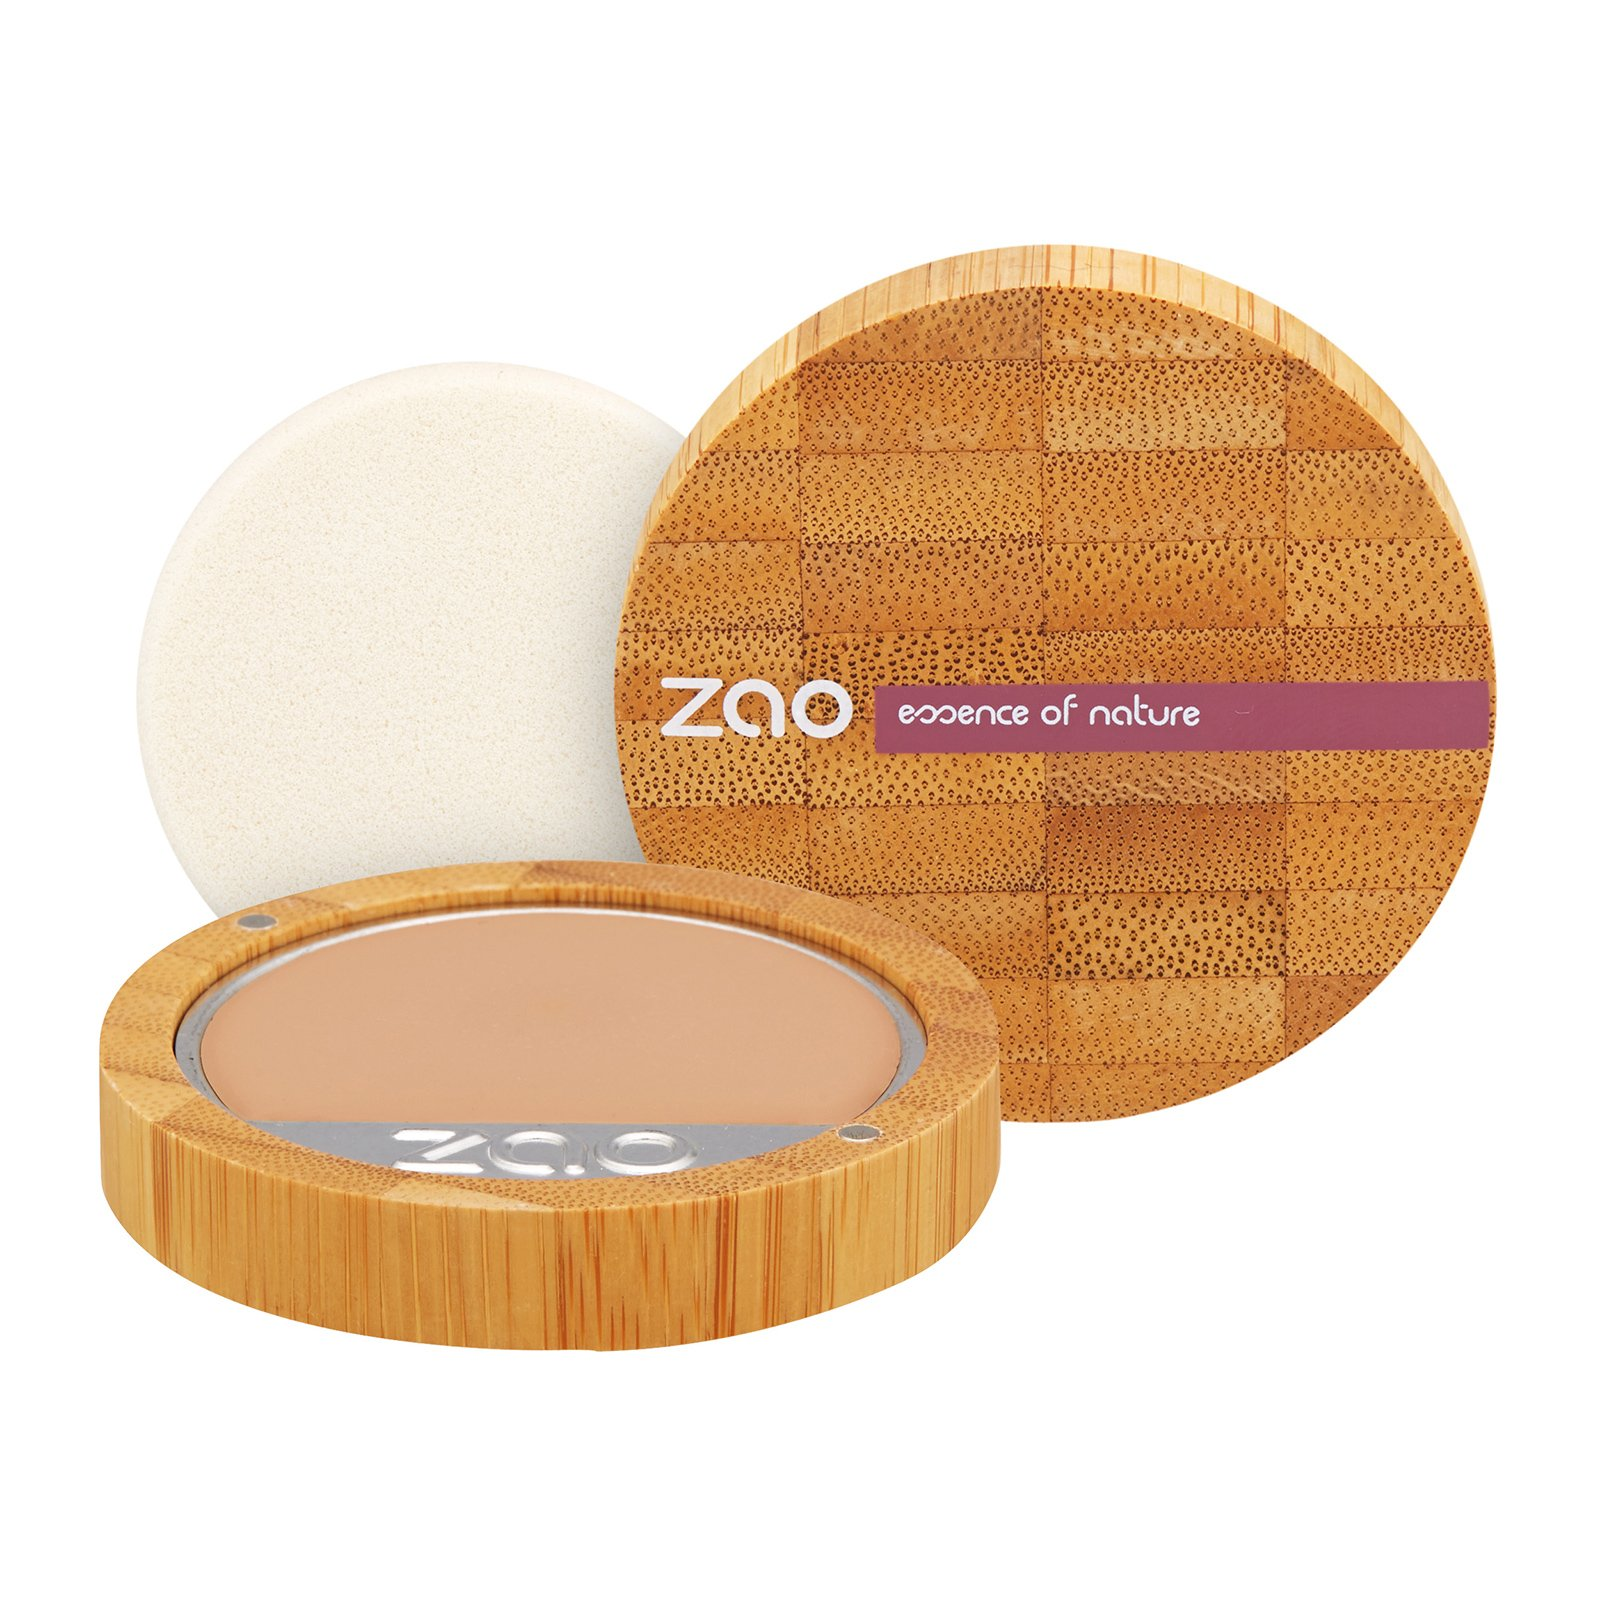 ZAO Compact foundation 733 Neutral, 0.212oz, 6g